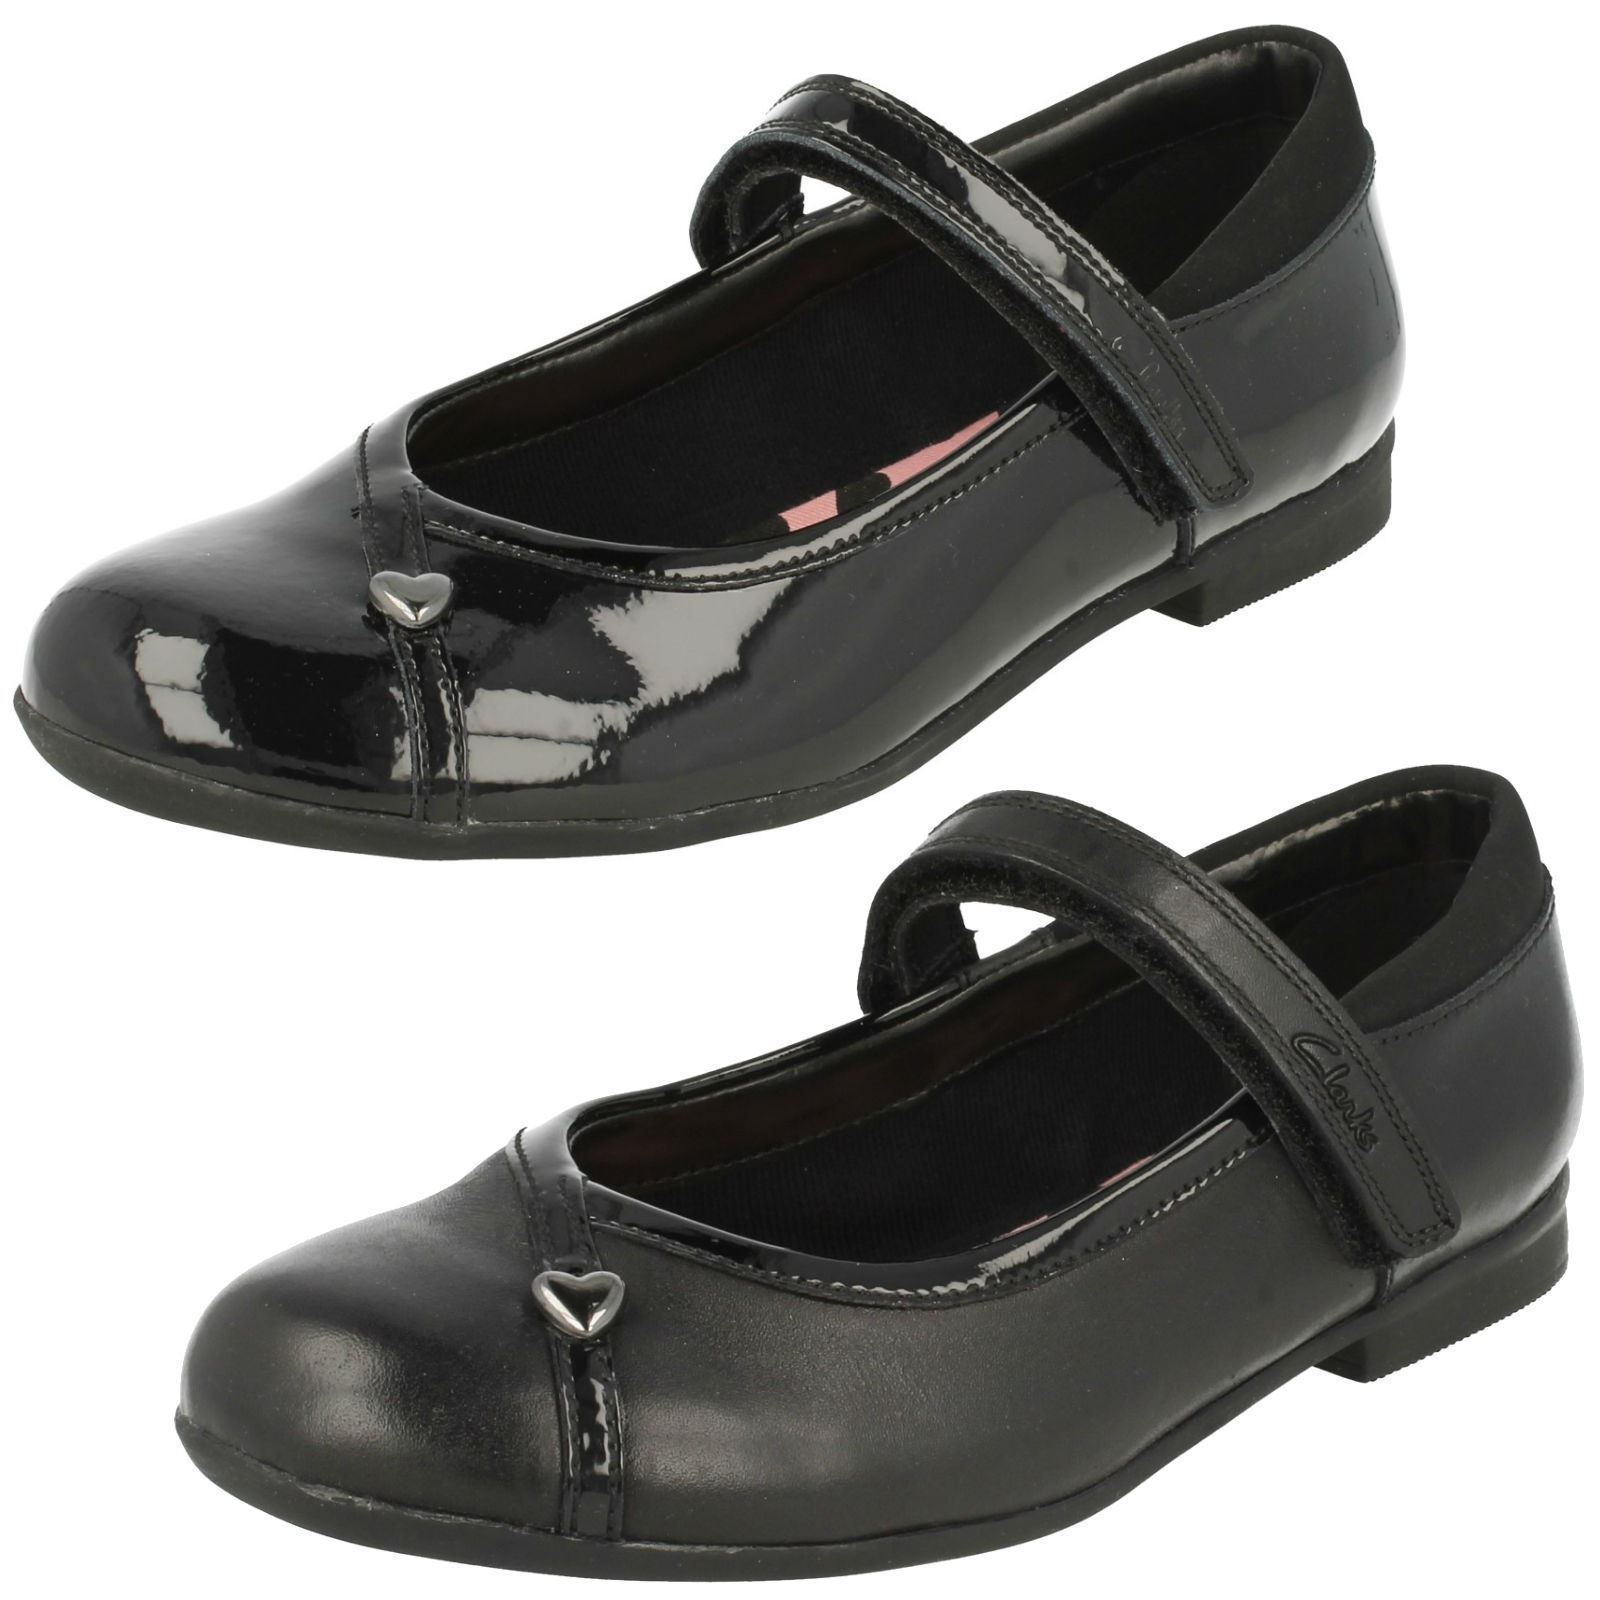 Girls Clarks Smart School Shoes Movello Lo Clothes, Shoes & Accessories Kids' Clothes, Shoes & Accs.